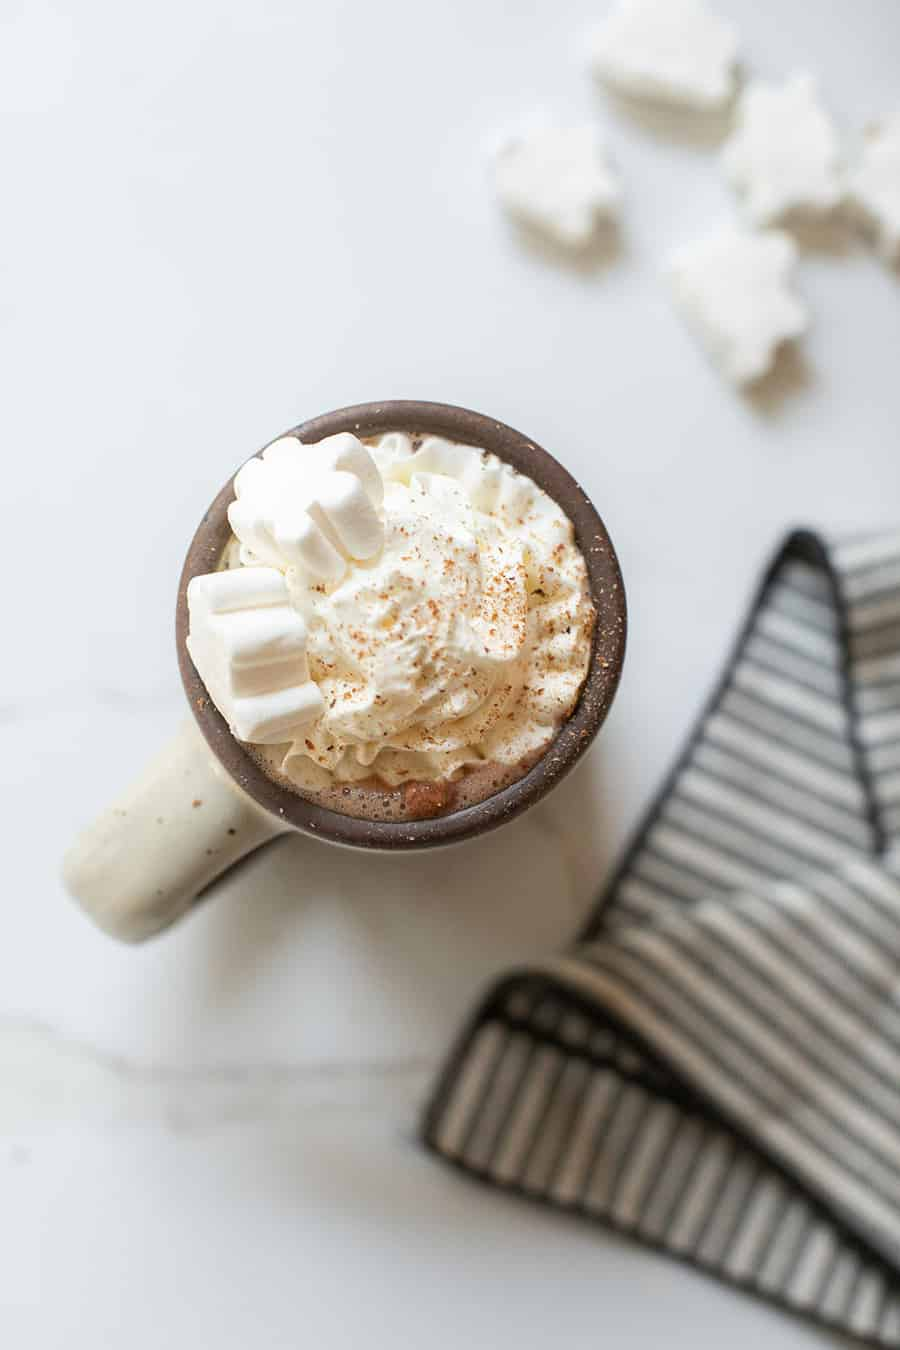 Hot chocolate recipe in a mug with whipped cream and marshmallows.